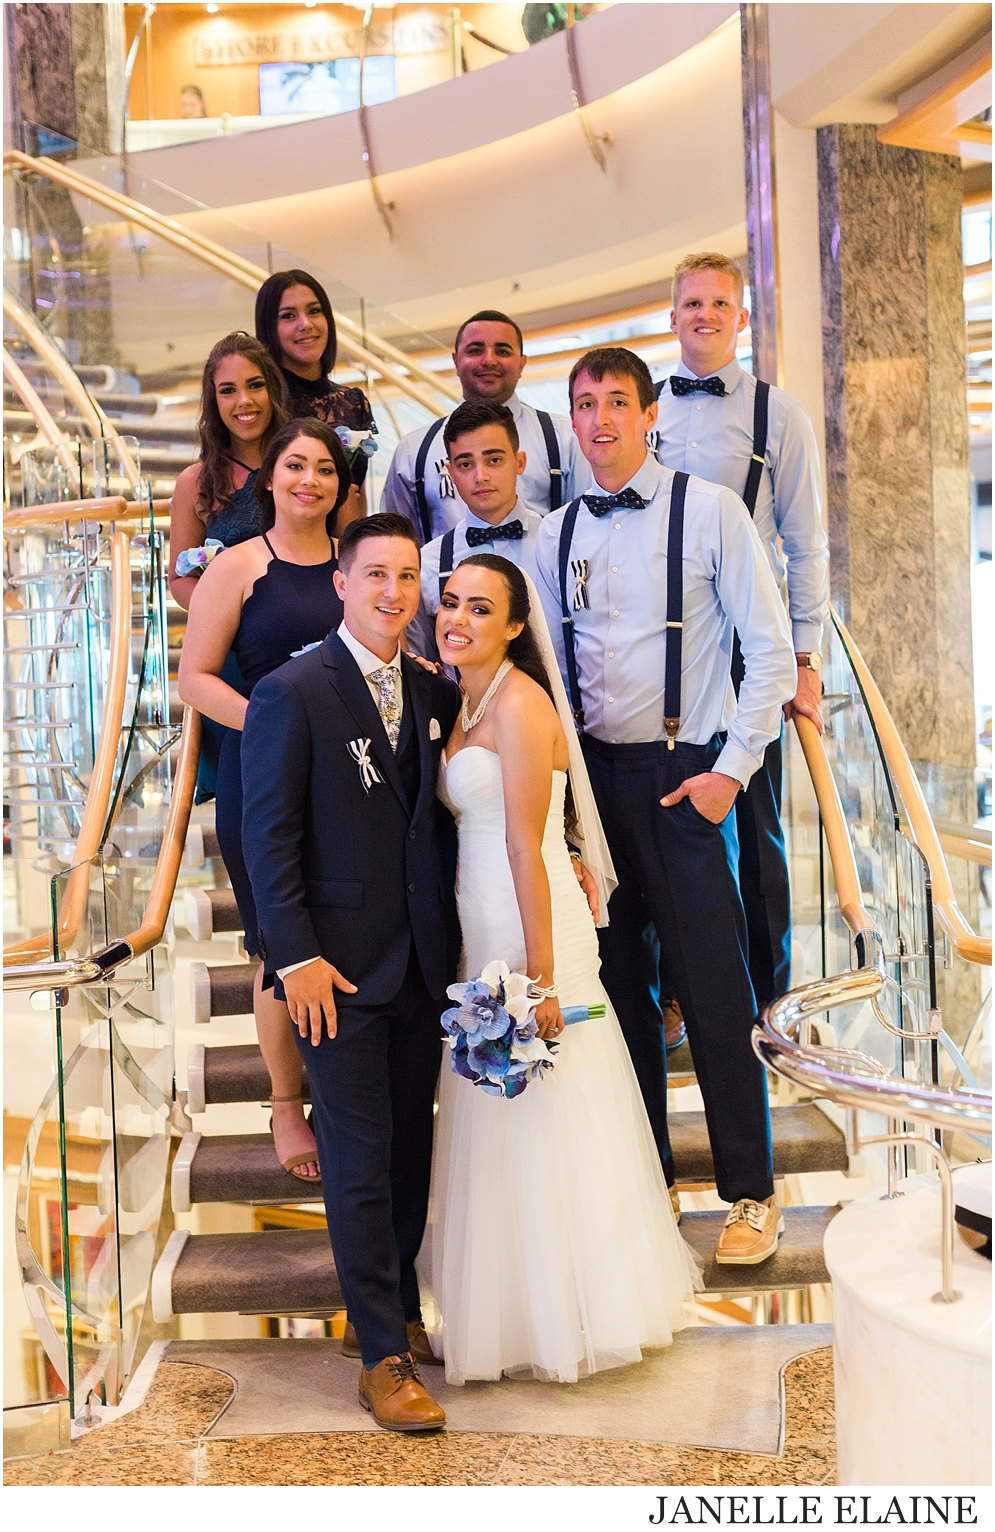 white wedding-royal caribbean-janelle elaine photography-258.jpg